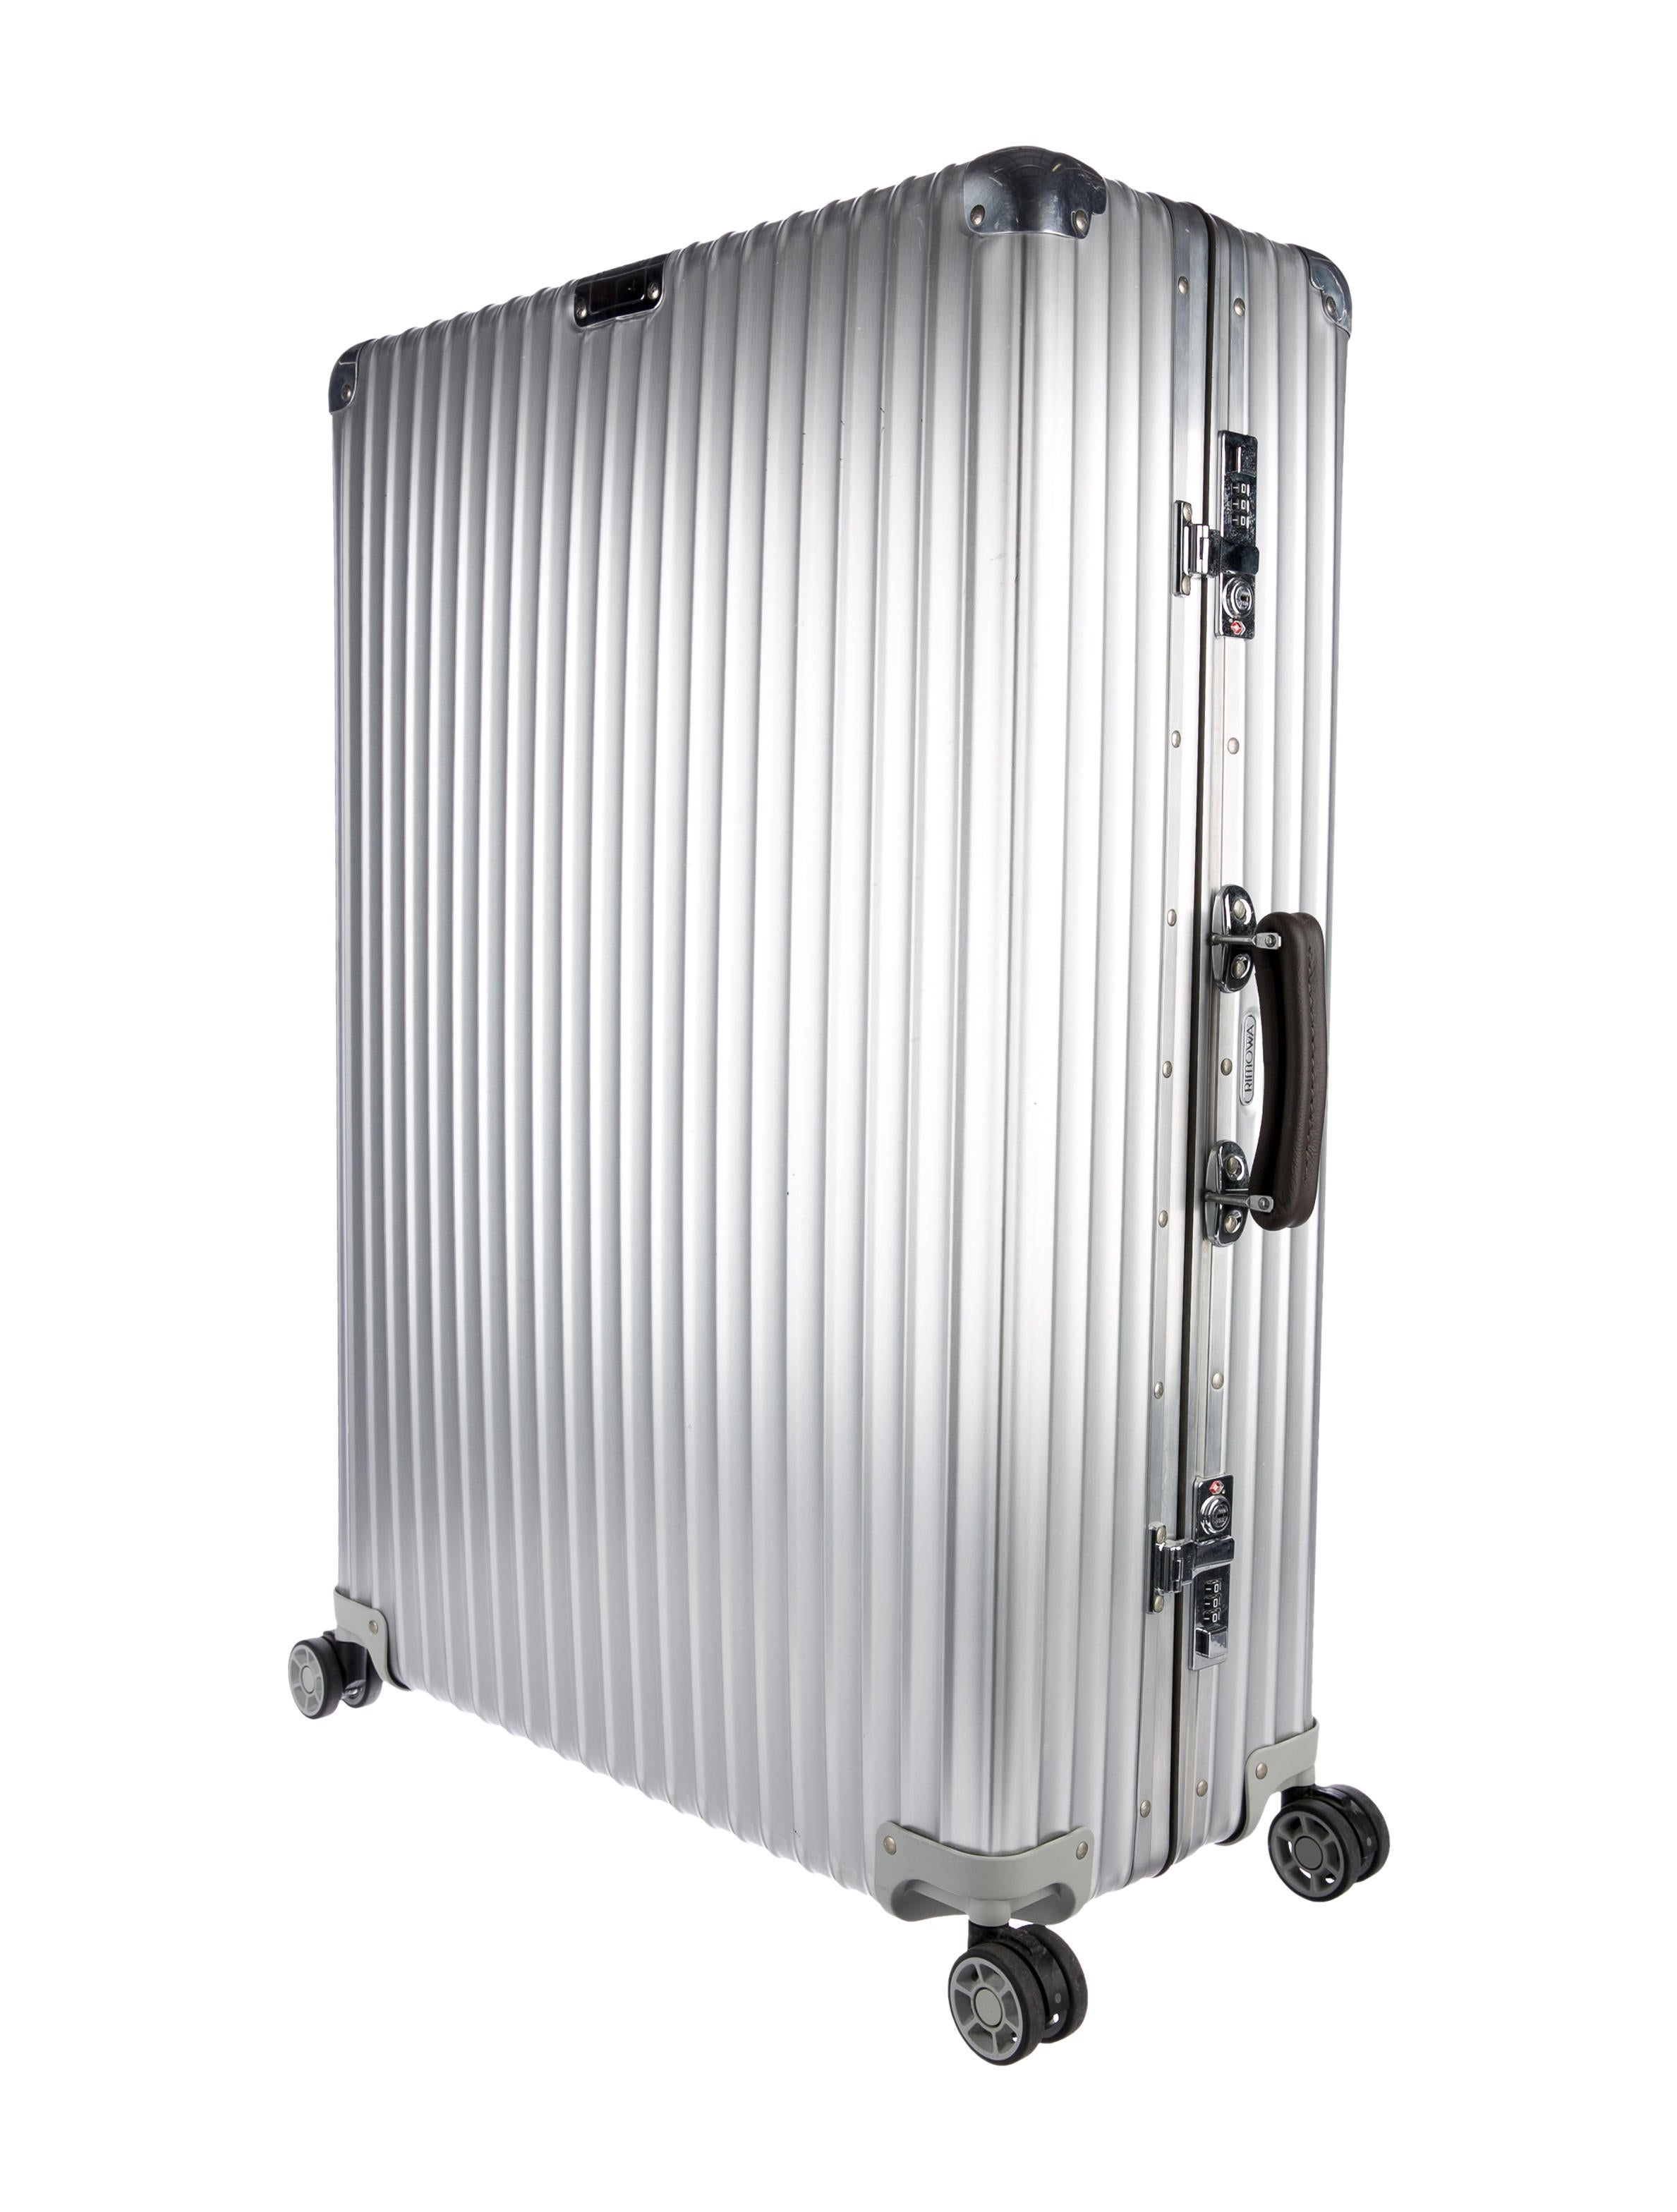 rimowa classic flight cabin multiwheel 85 0l trolley. Black Bedroom Furniture Sets. Home Design Ideas